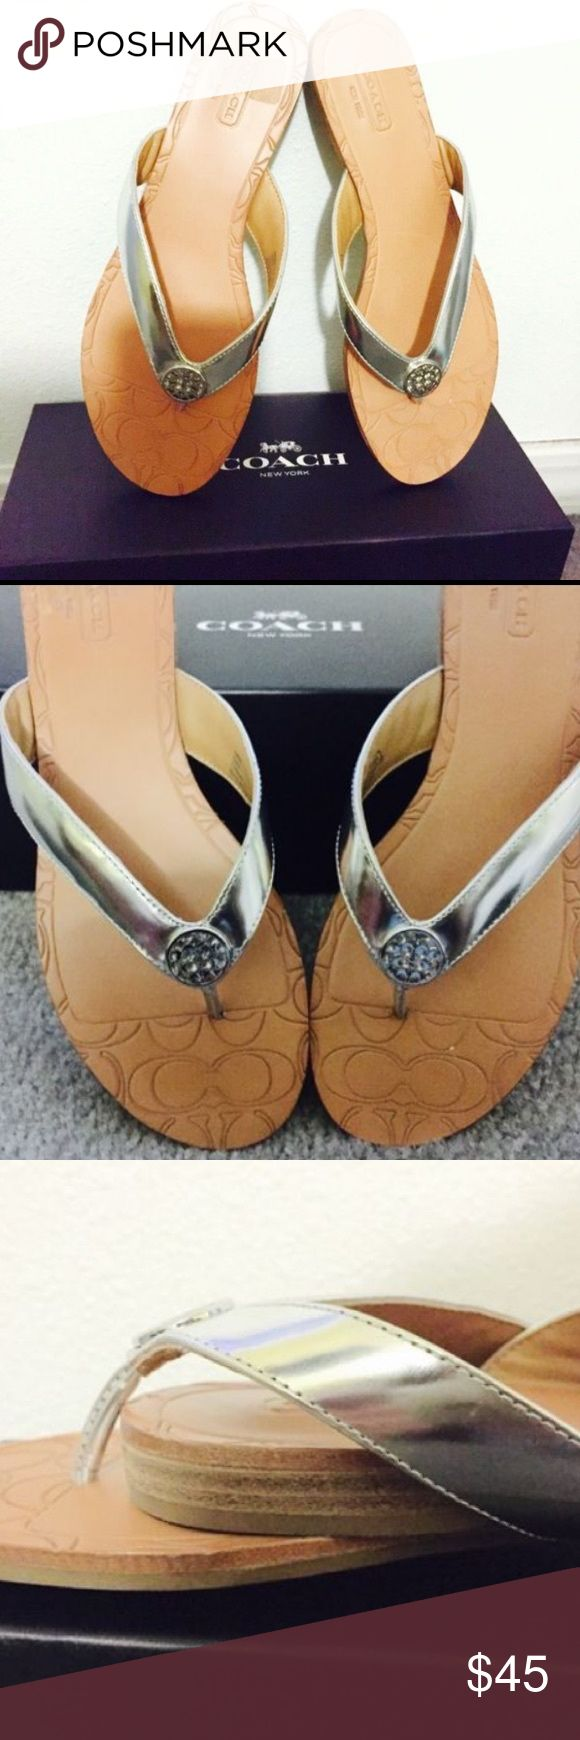 Coach Metallic Flip Flops Authentic and in like new condition. Coach Metallic Flip Flops. Size 7. Comes in original box. Coach Shoes Slippers